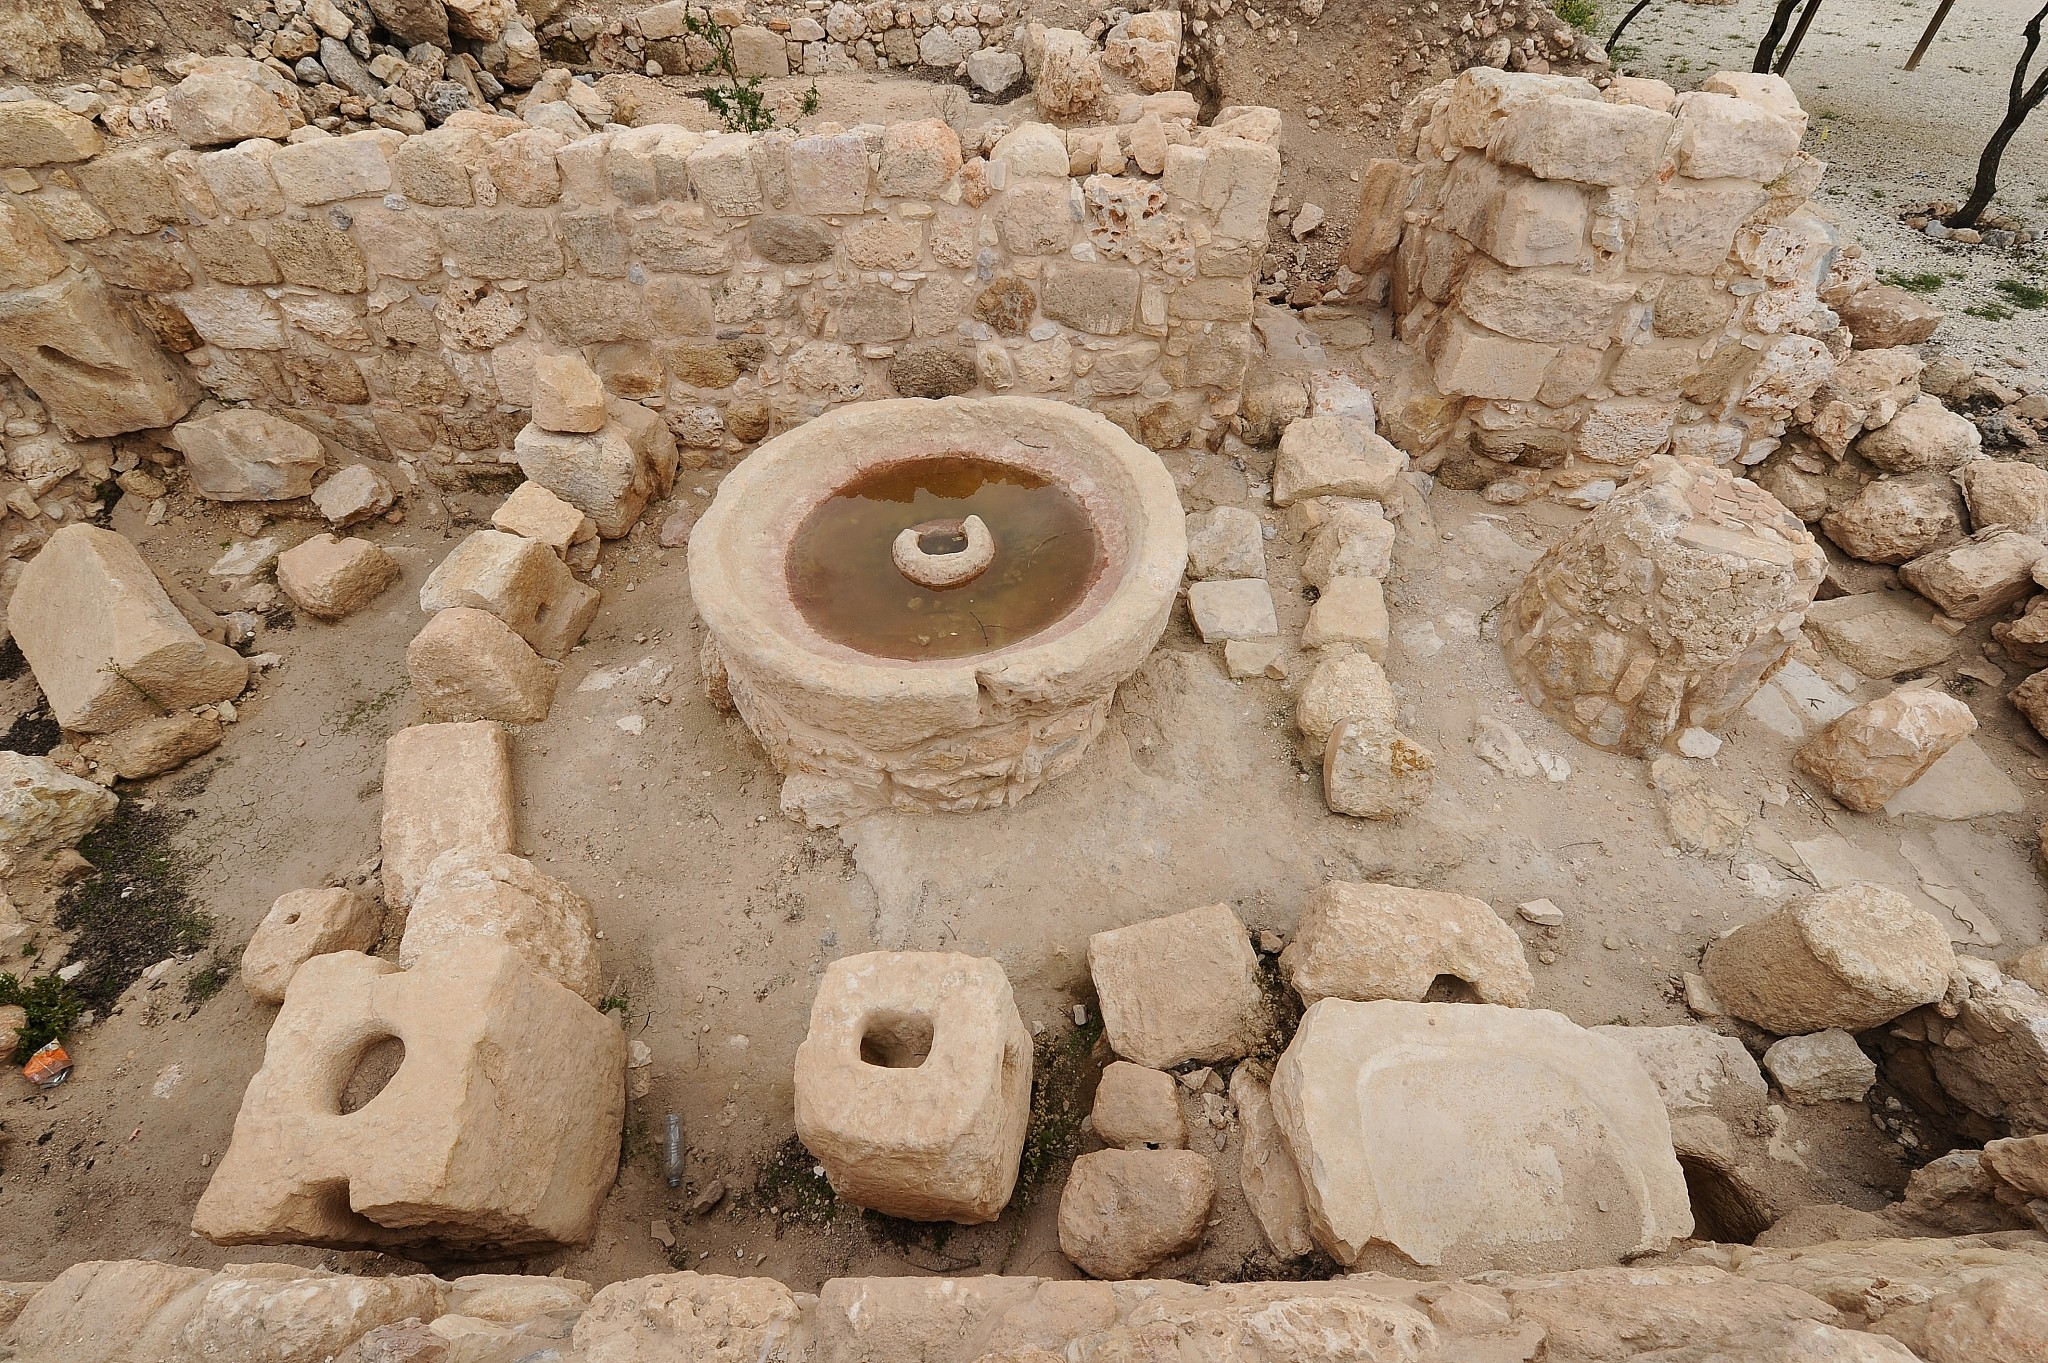 Archaeological finds from the Second Temple period at Shiloh, March 2014. (Mendy Hechtman/FLASH90)